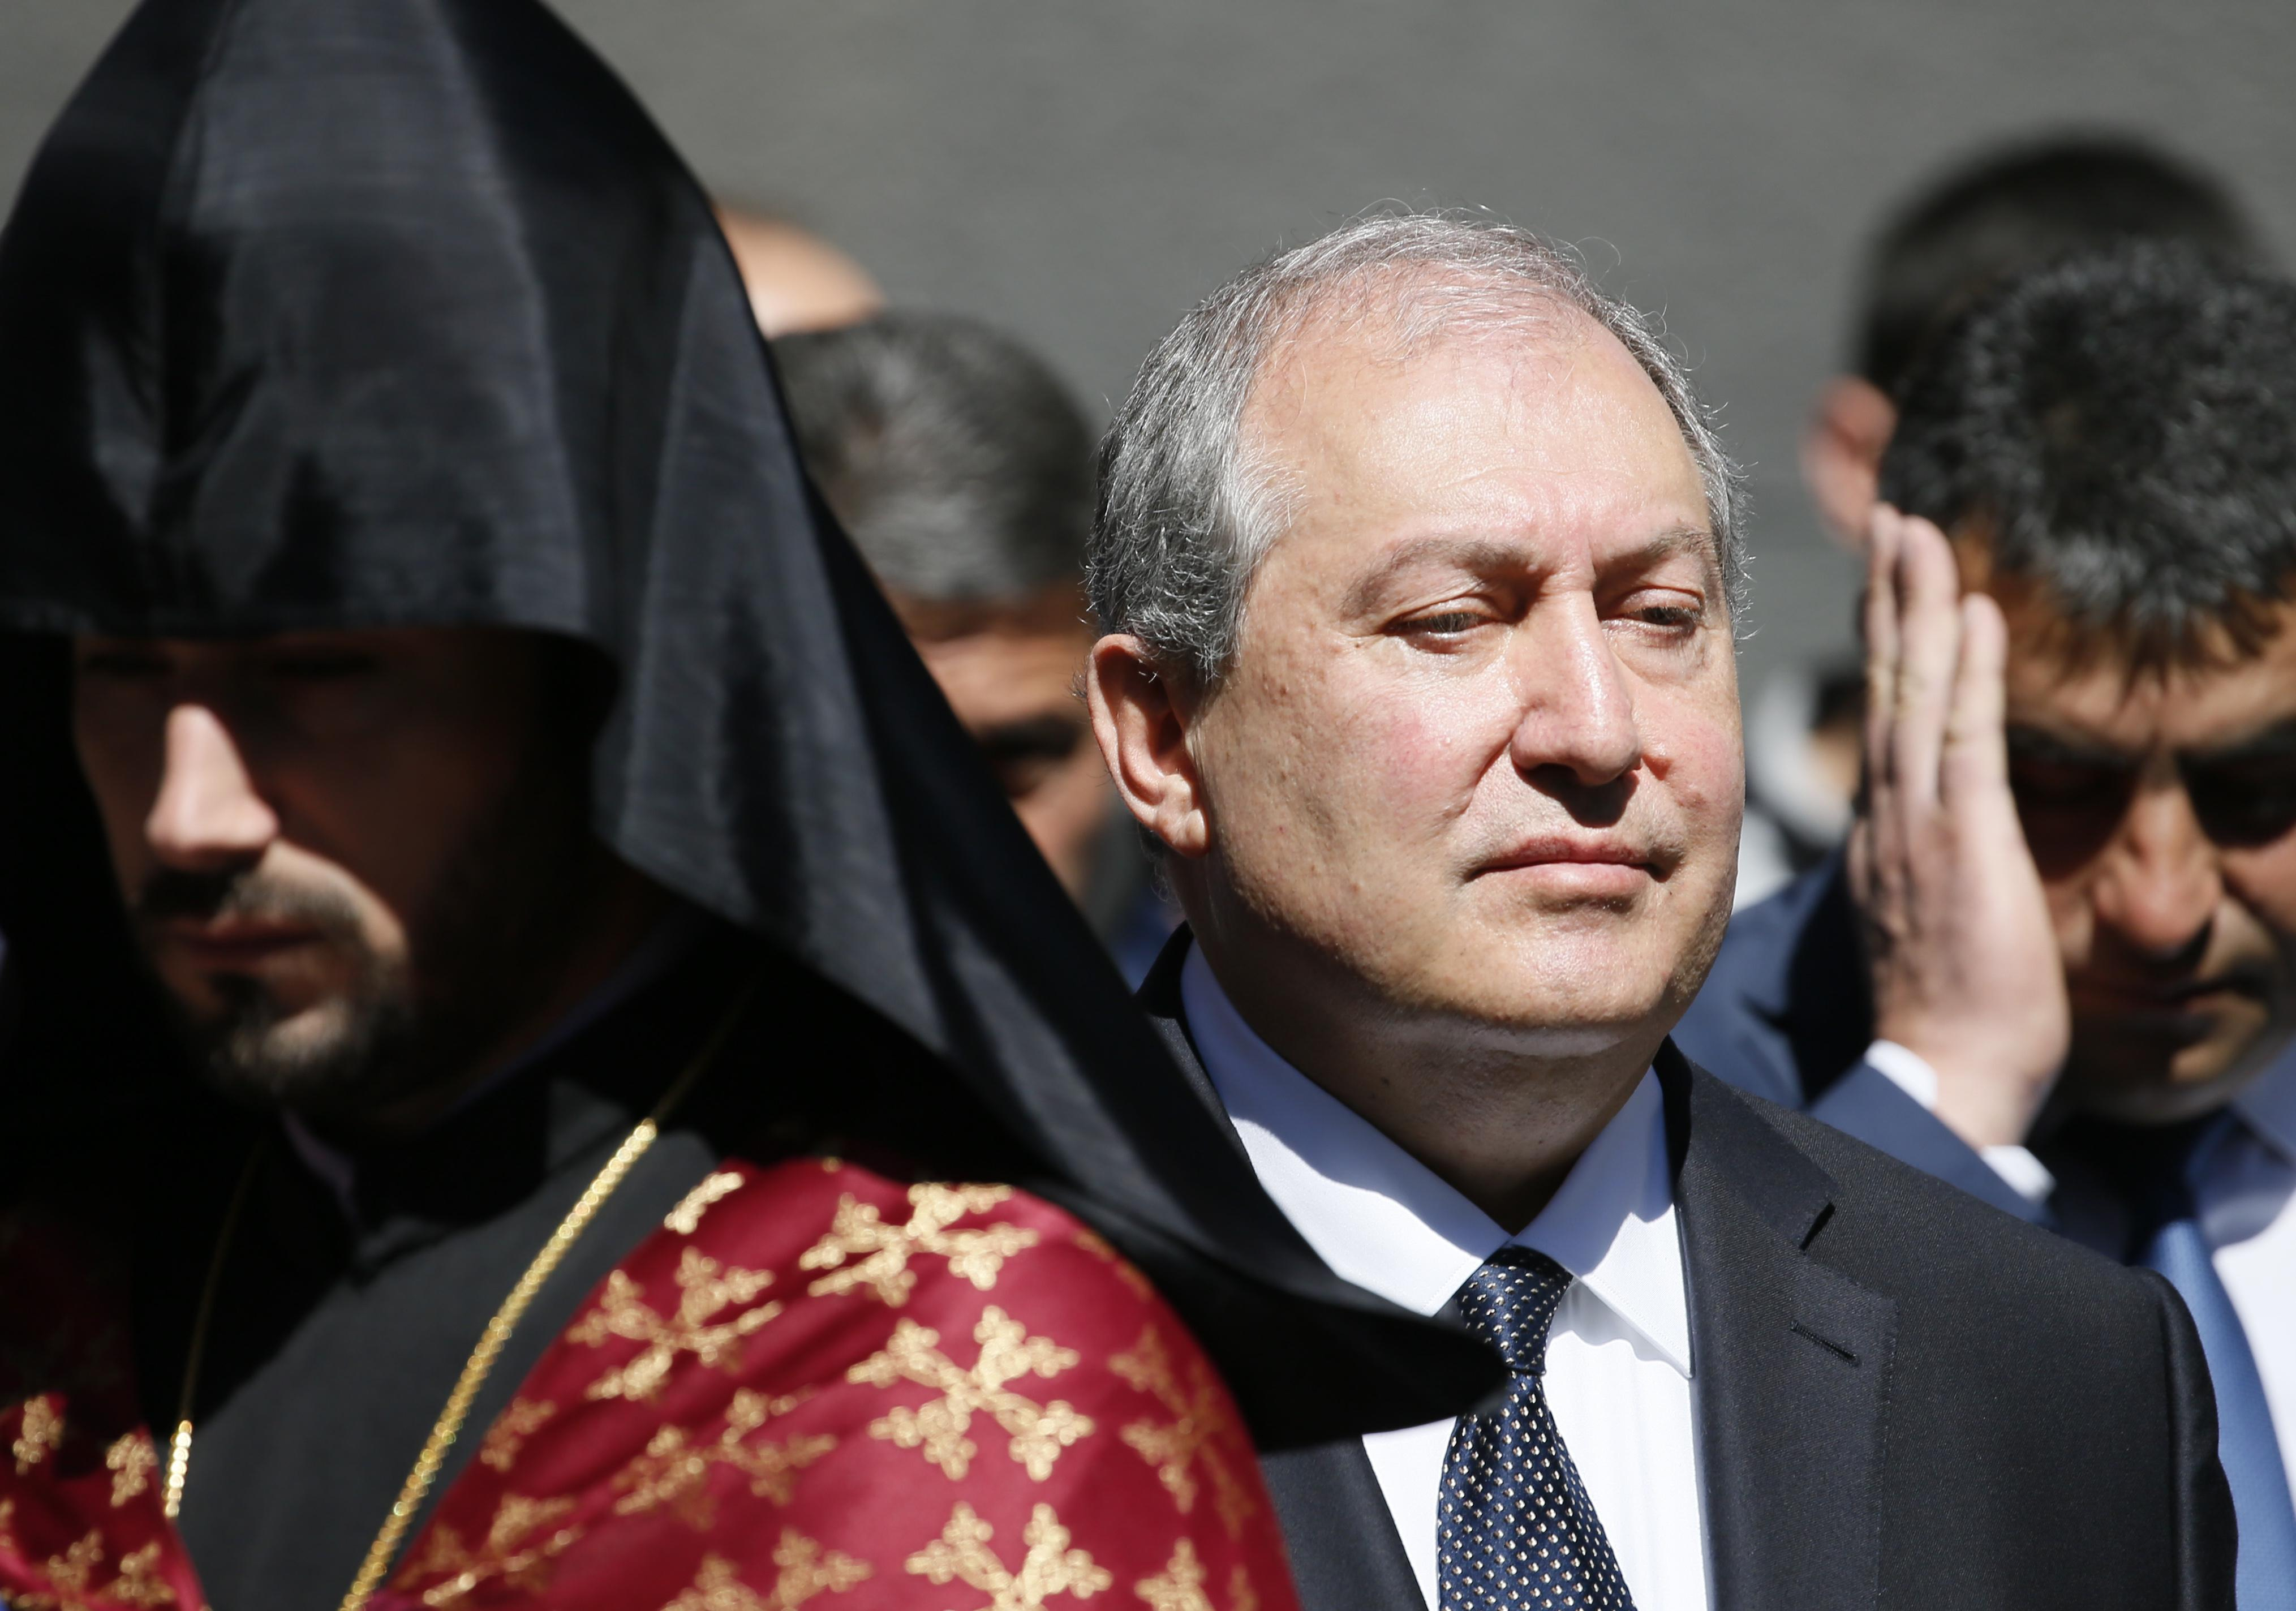 Armenian President Armen Sarkissian attends a wreath laying ceremony to commemorate the 103rd anniversary of mass killing of Armenians by Ottoman Turks, at the Tsitsernakaberd Memorial Complex in Yerevan, Armenia April 24, 2018. Gleb Garanich